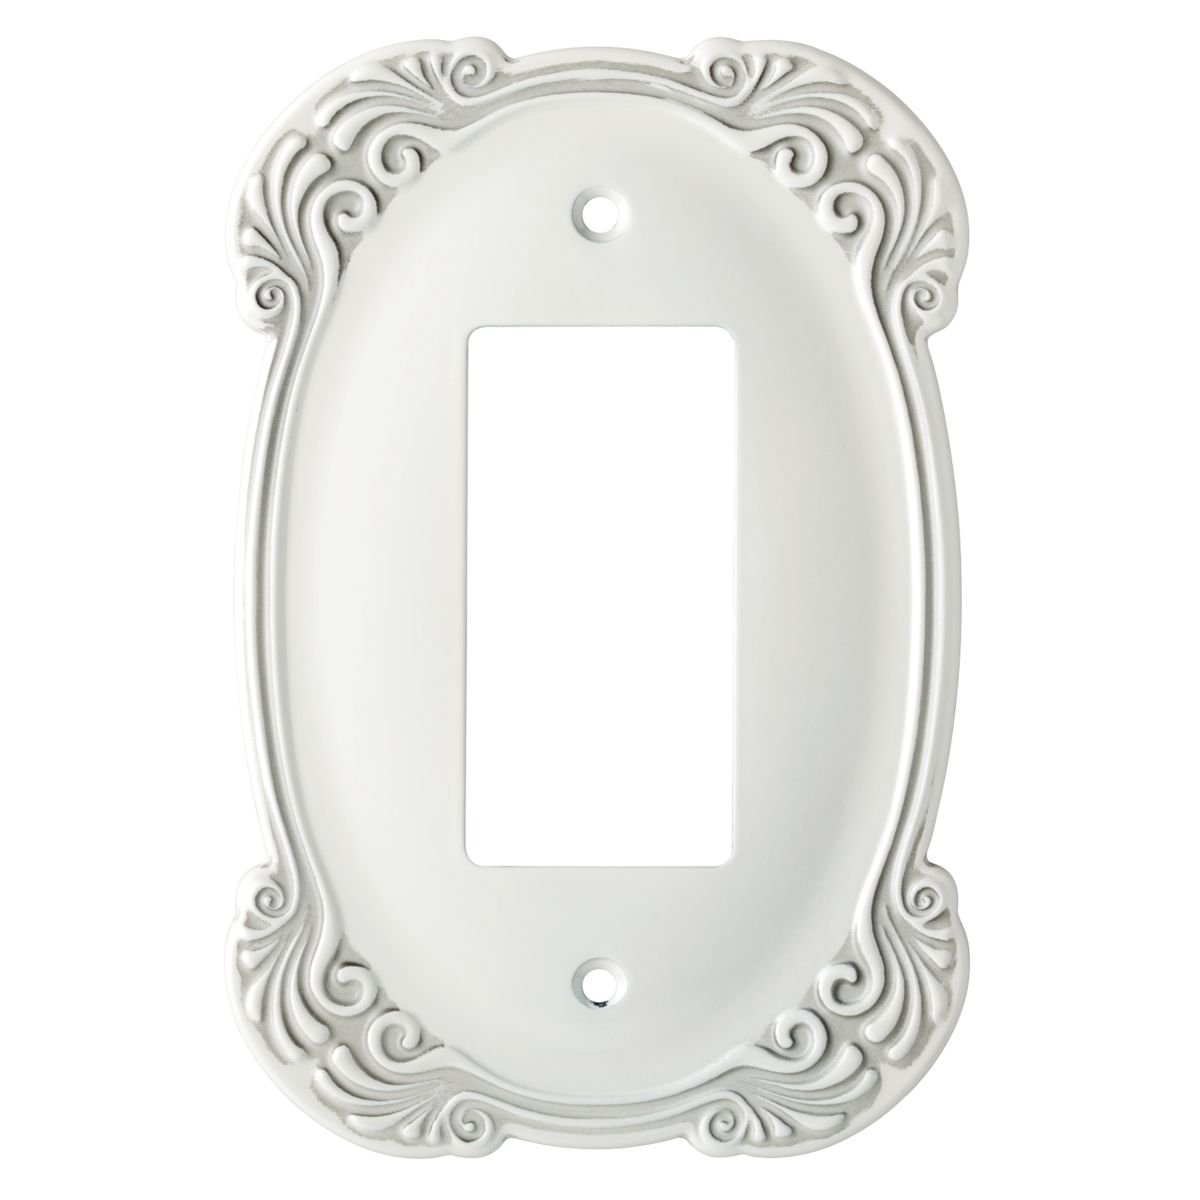 Franklin Brass 144392 Arboresque Single Decorator Wall Plate / Switch Plate / Cover by Franklin Brass